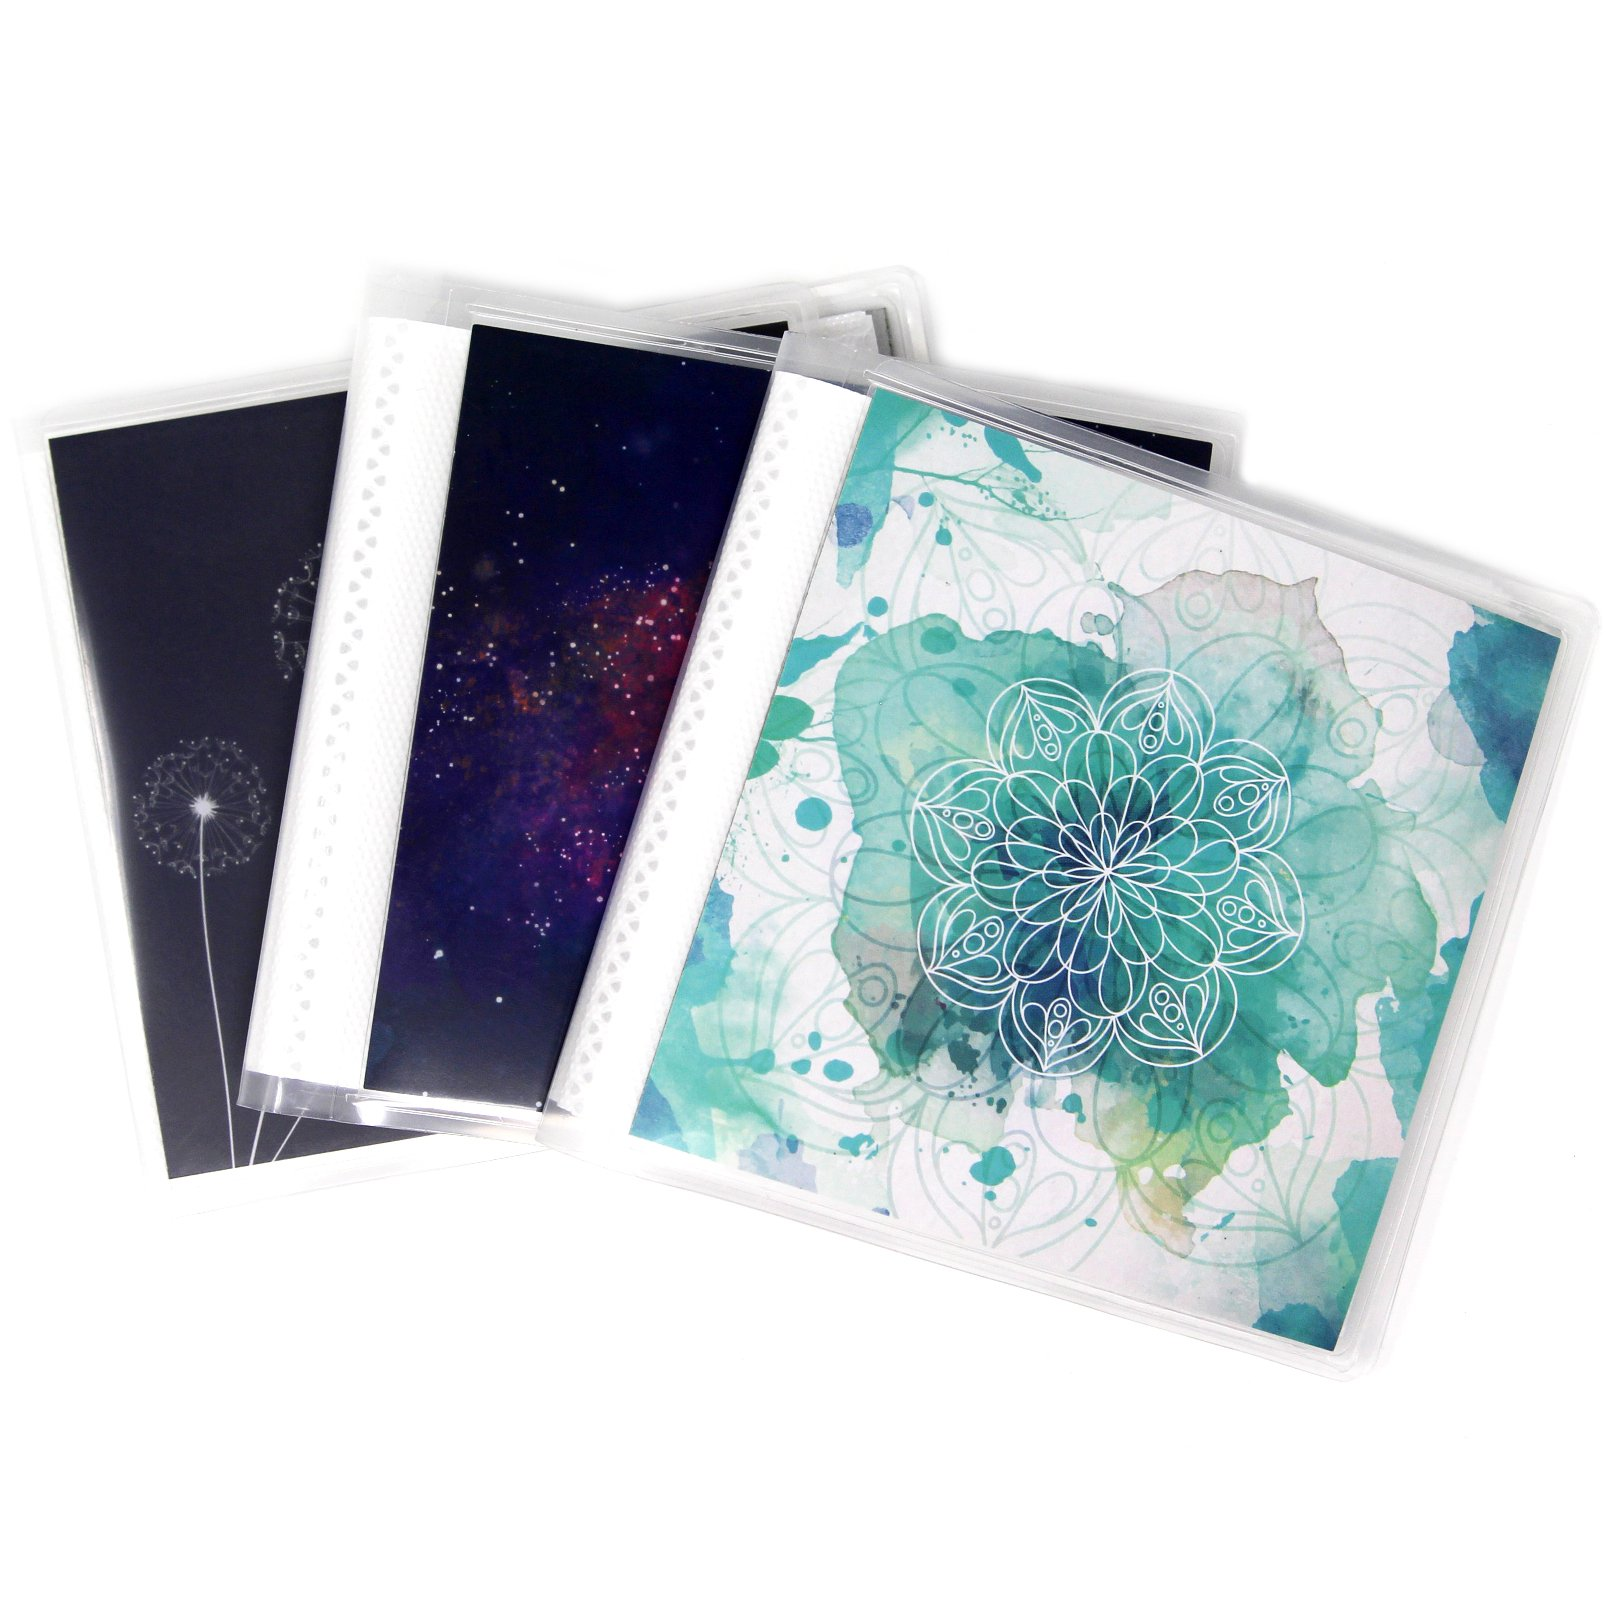 4 x 4 Square Format Photo Albums for Social Media Pack of 3, Each Mini Album Holds Up to 48 4x4 Photos. Flexible, removable covers come in random, assorted patterns and colors.